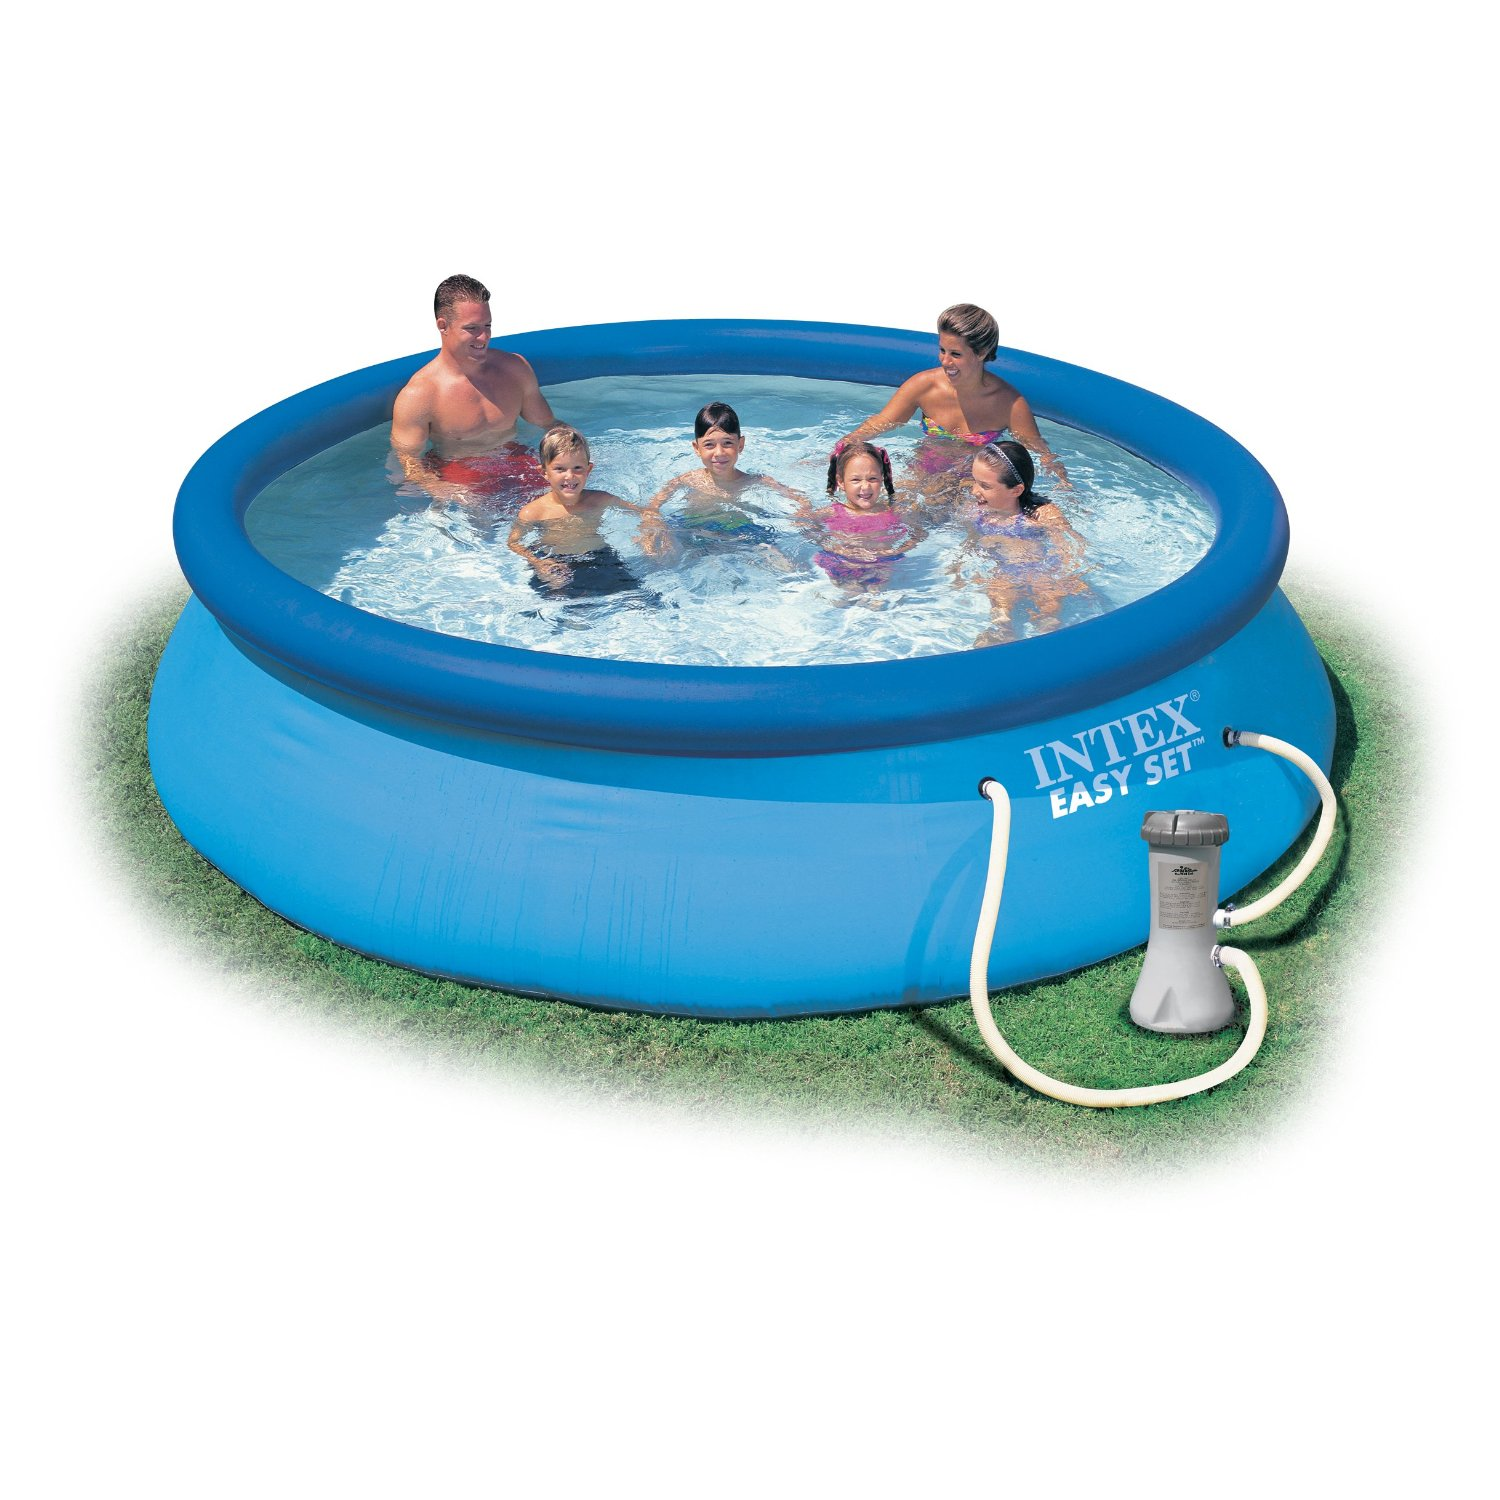 Quick Pool Sandfilteranlage Pool Mit Filteranlage Quick Up Pool 457 X 91cm Fast Set